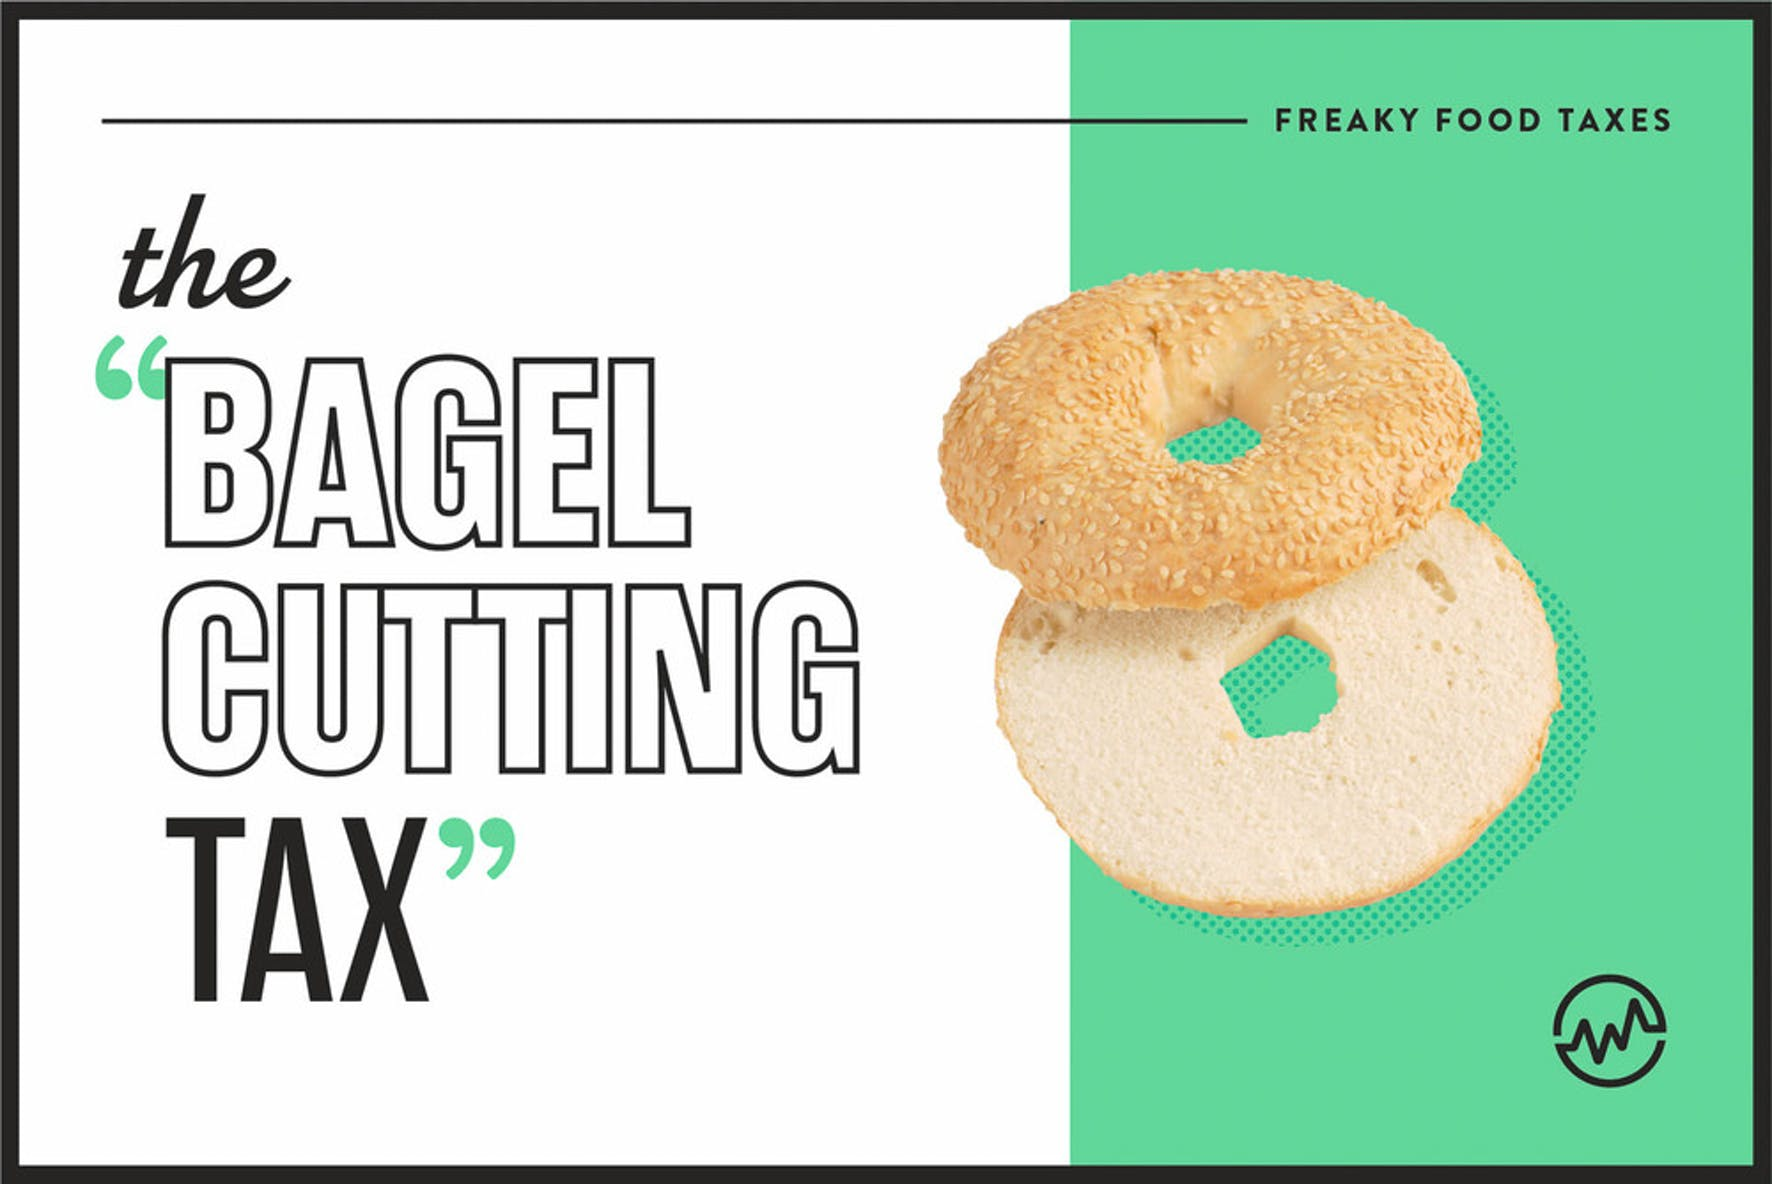 bizzare taxes on food - the bagel cutting tax in New York